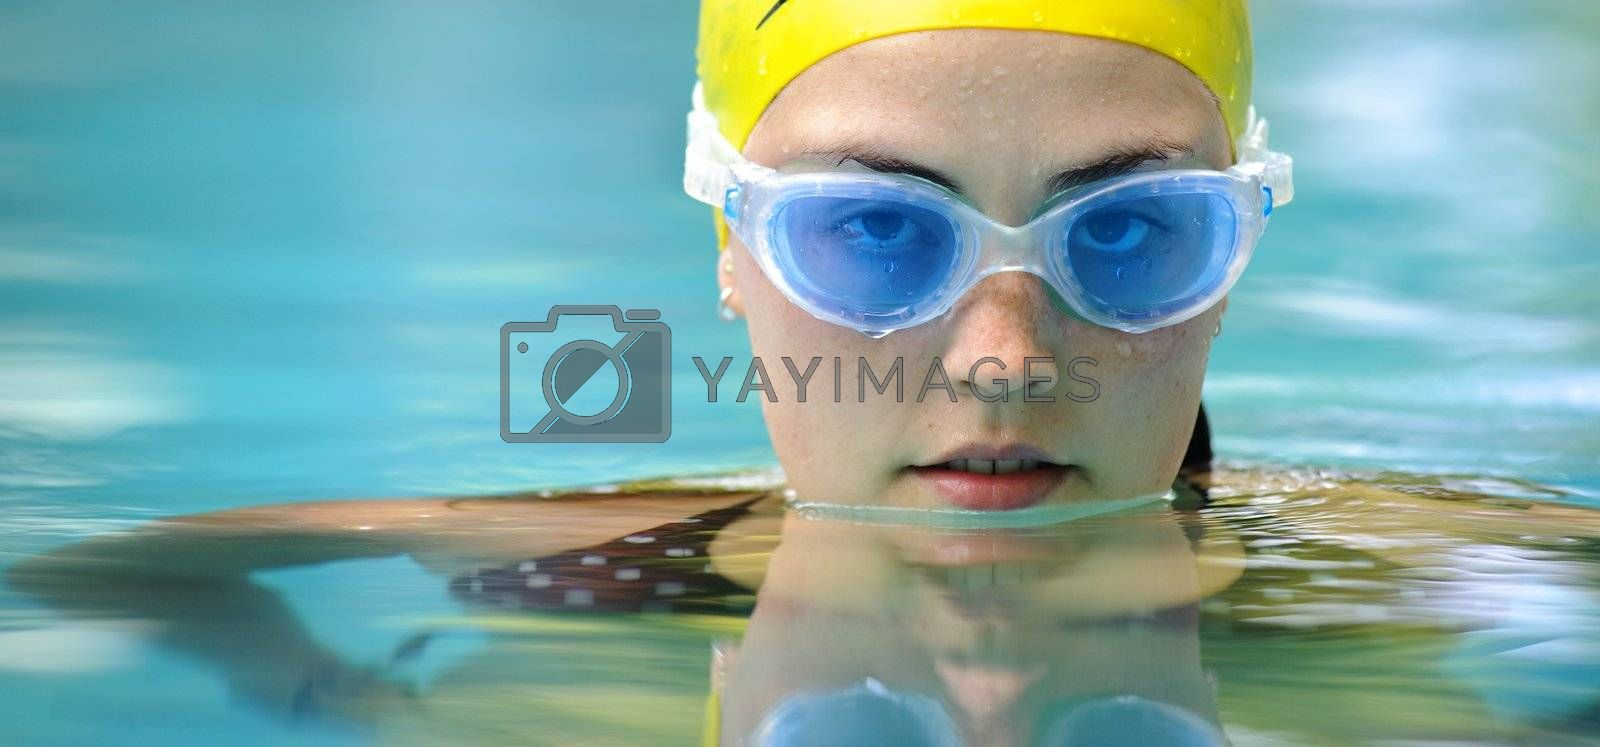 Swimmer looks towards camera while in the water